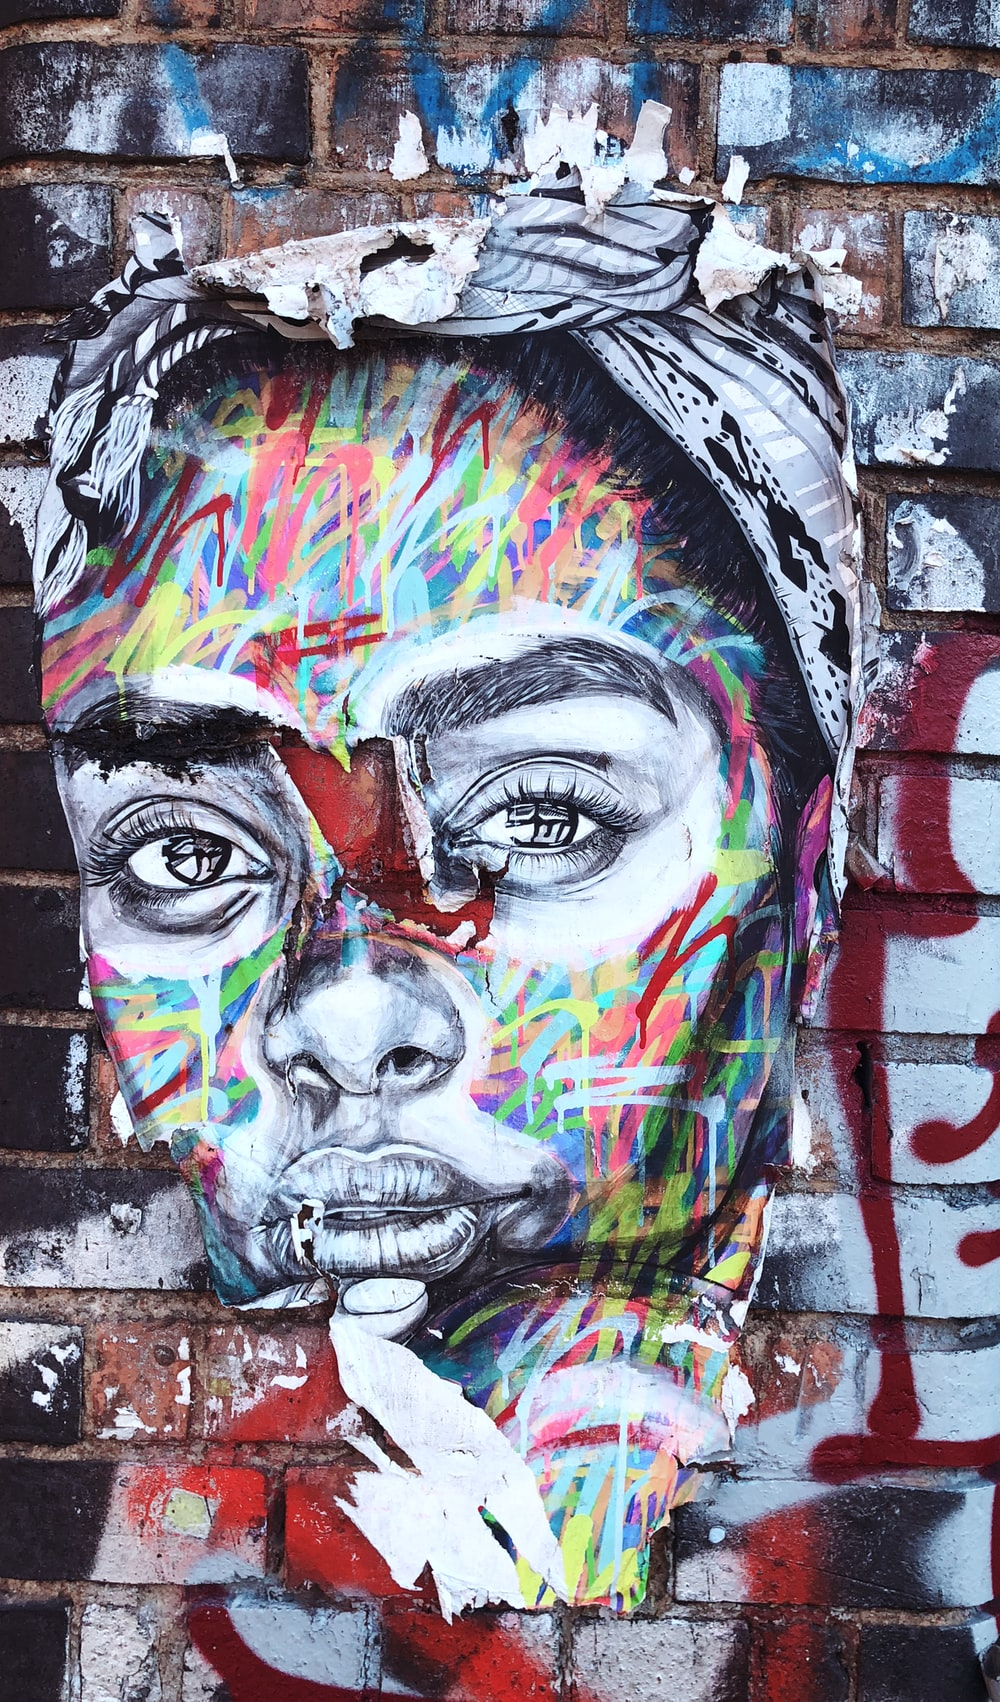 graffiti of woman's face on wall